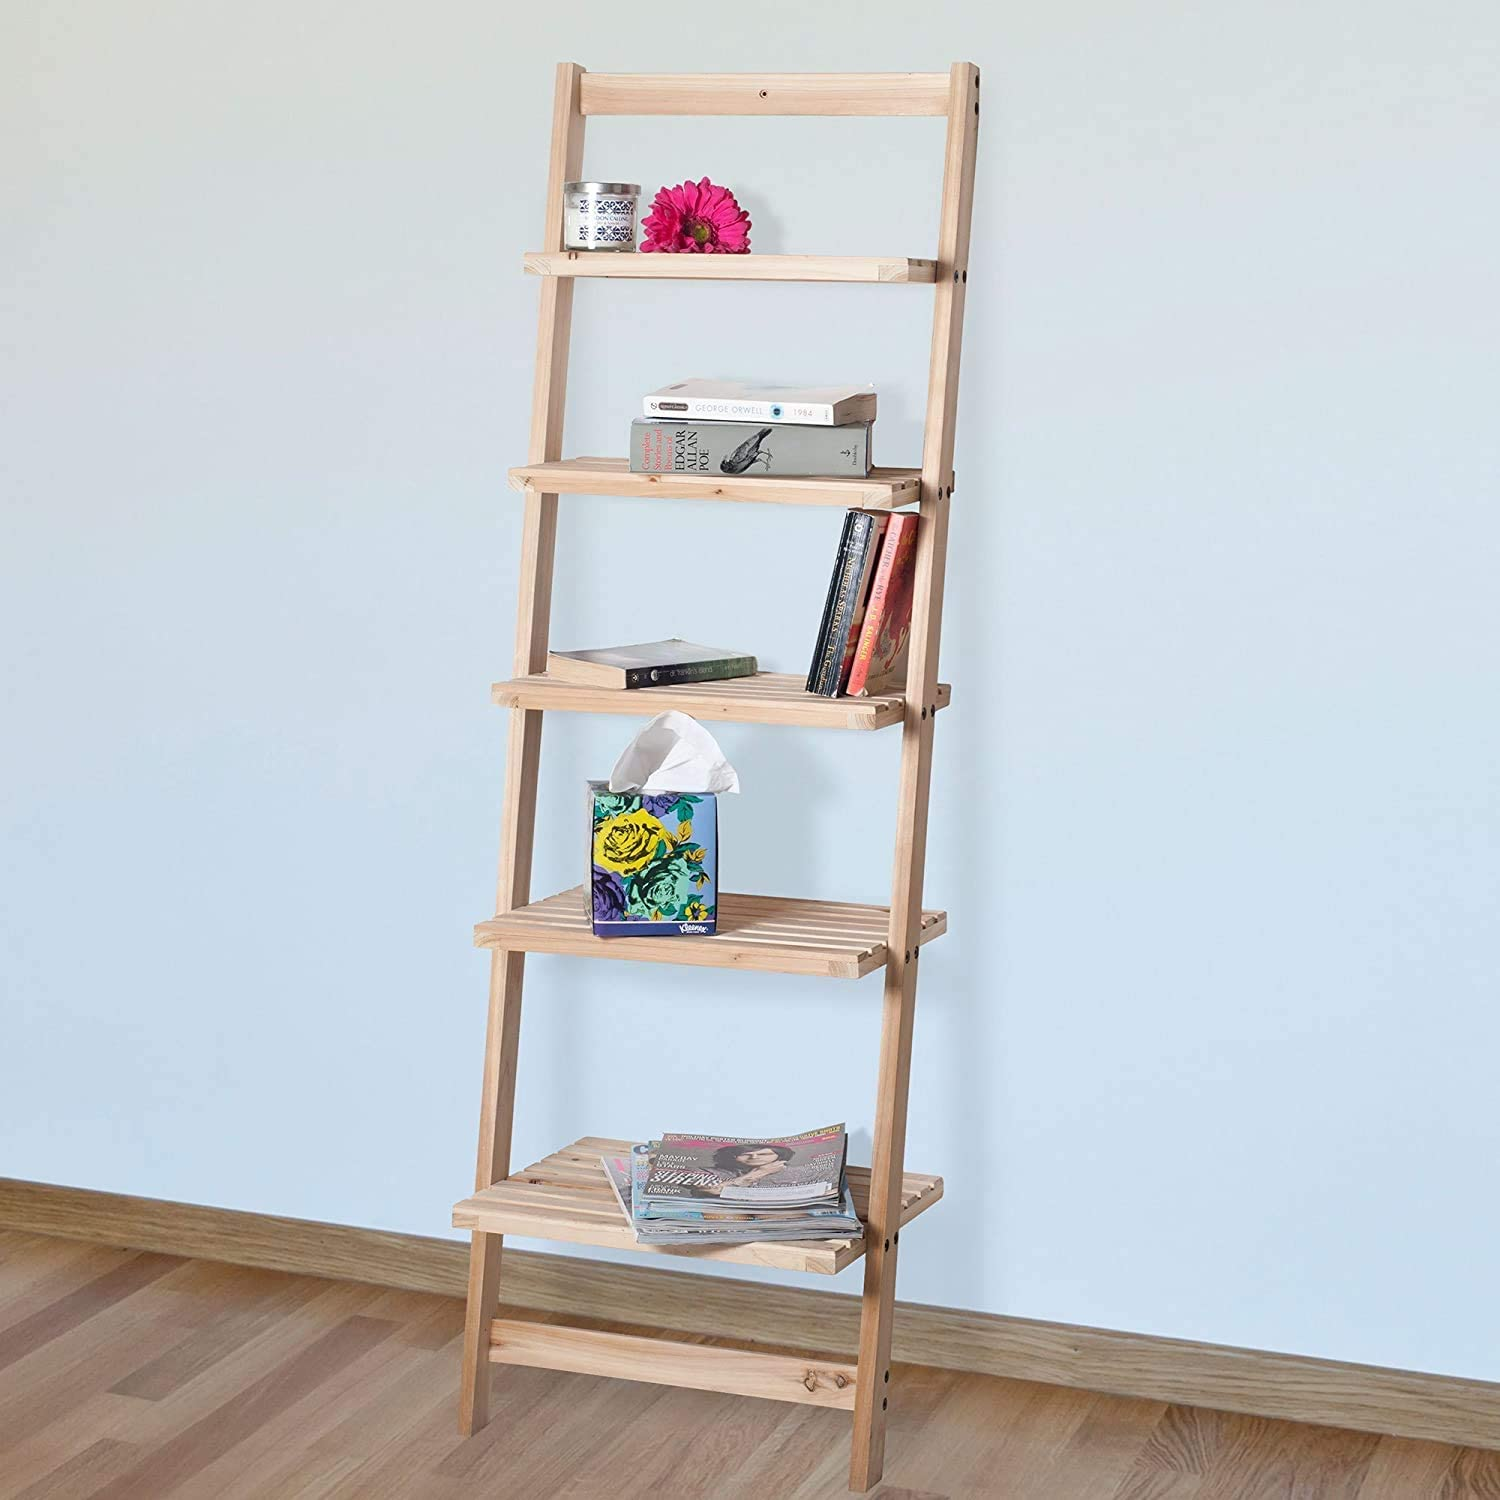 Book Shelf for Living Room, Bathroom, and Kitchen Shelving, Home Décor by Lavish Home- 5-Tier Decorative Leaning Ladder Shelf- Wood Display Shelving: Home & Kitchen